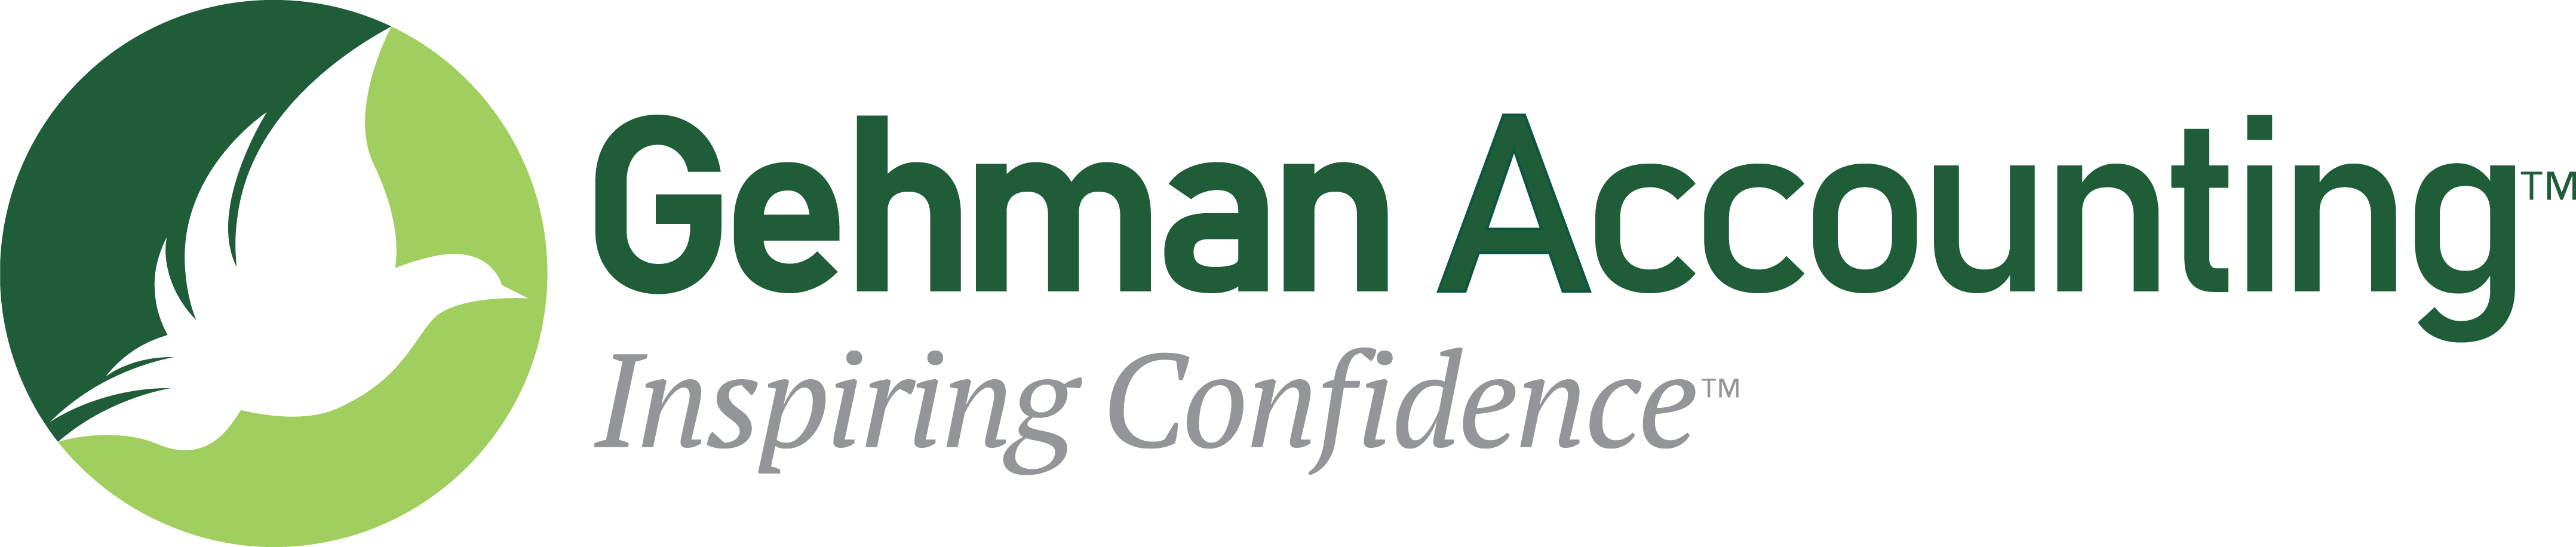 Gehman Accounting Logo - Website - Color